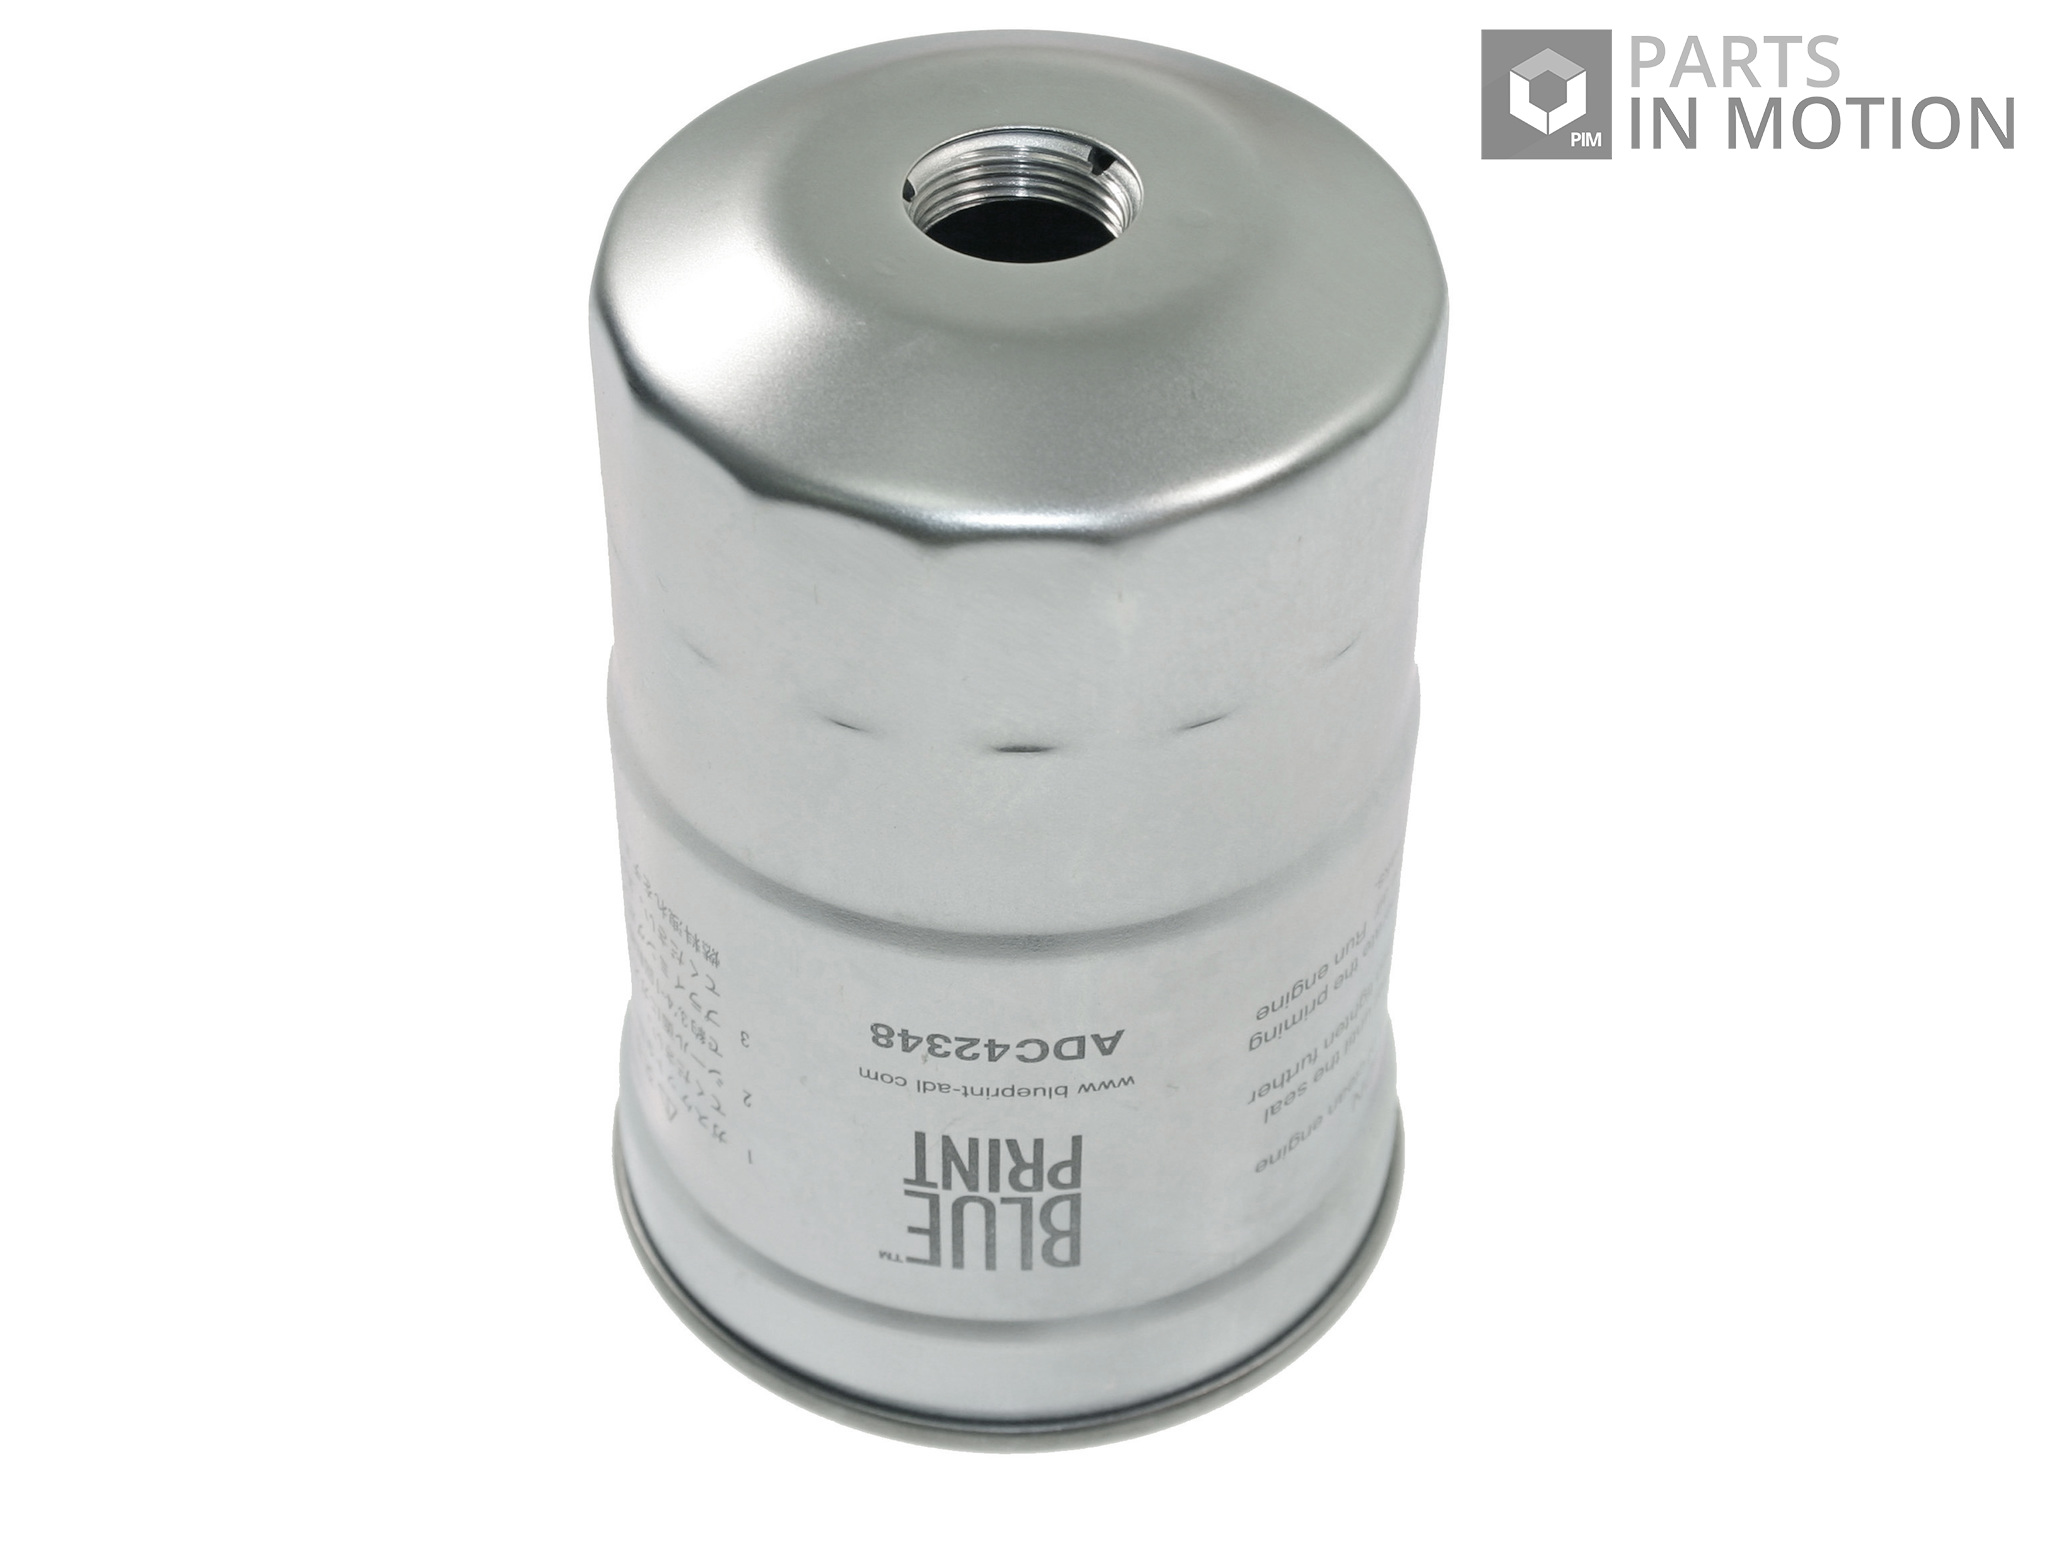 Fuel Filter Fits Mitsubishi Pajero Shogun Mk3 32d 00 To 06 4m41 Adl 10 Sp Image Is Loading 3